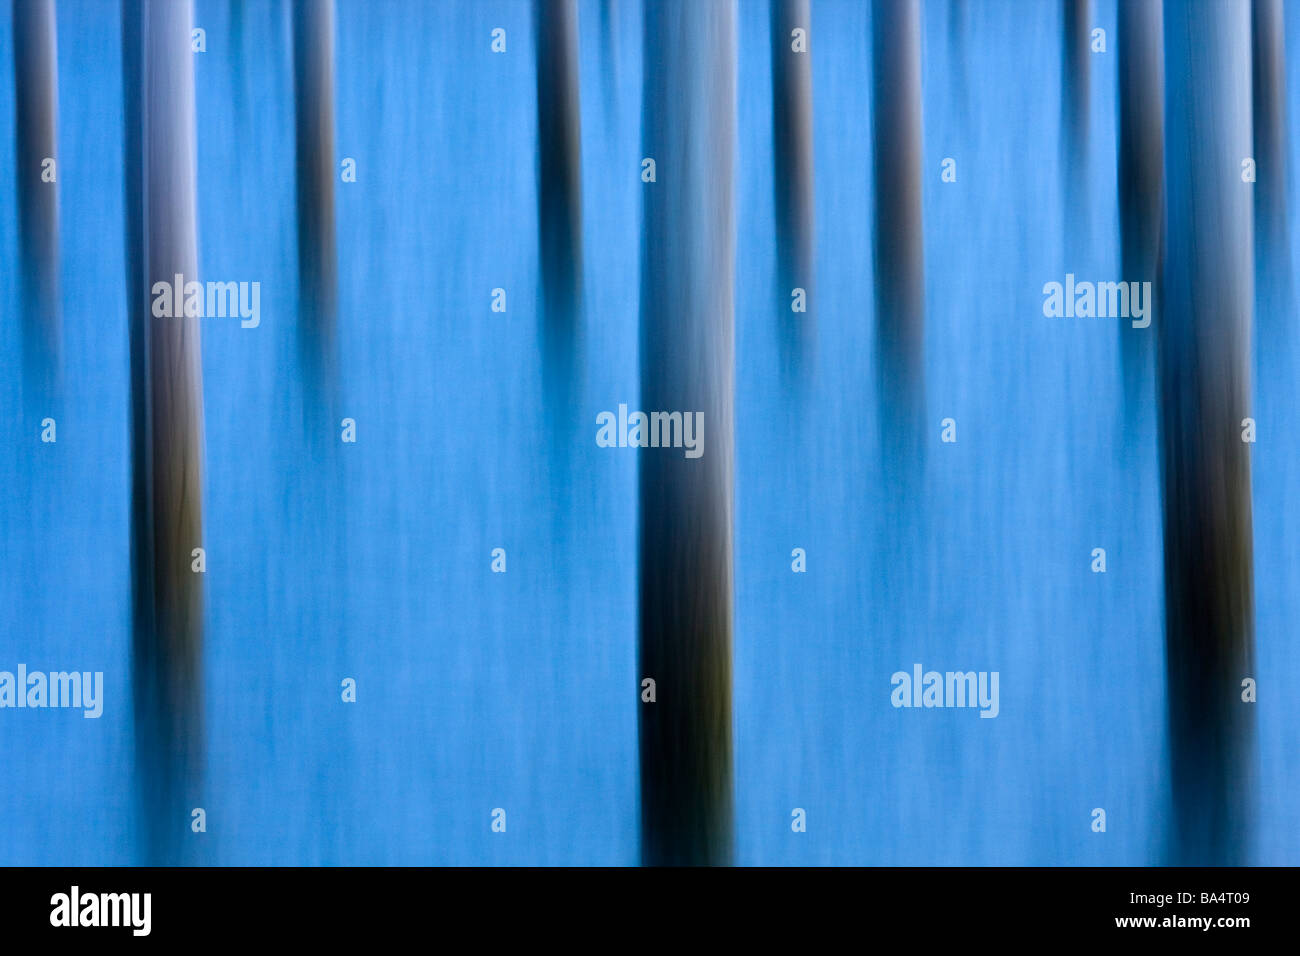 Abstract image of piers in water - Stock Image